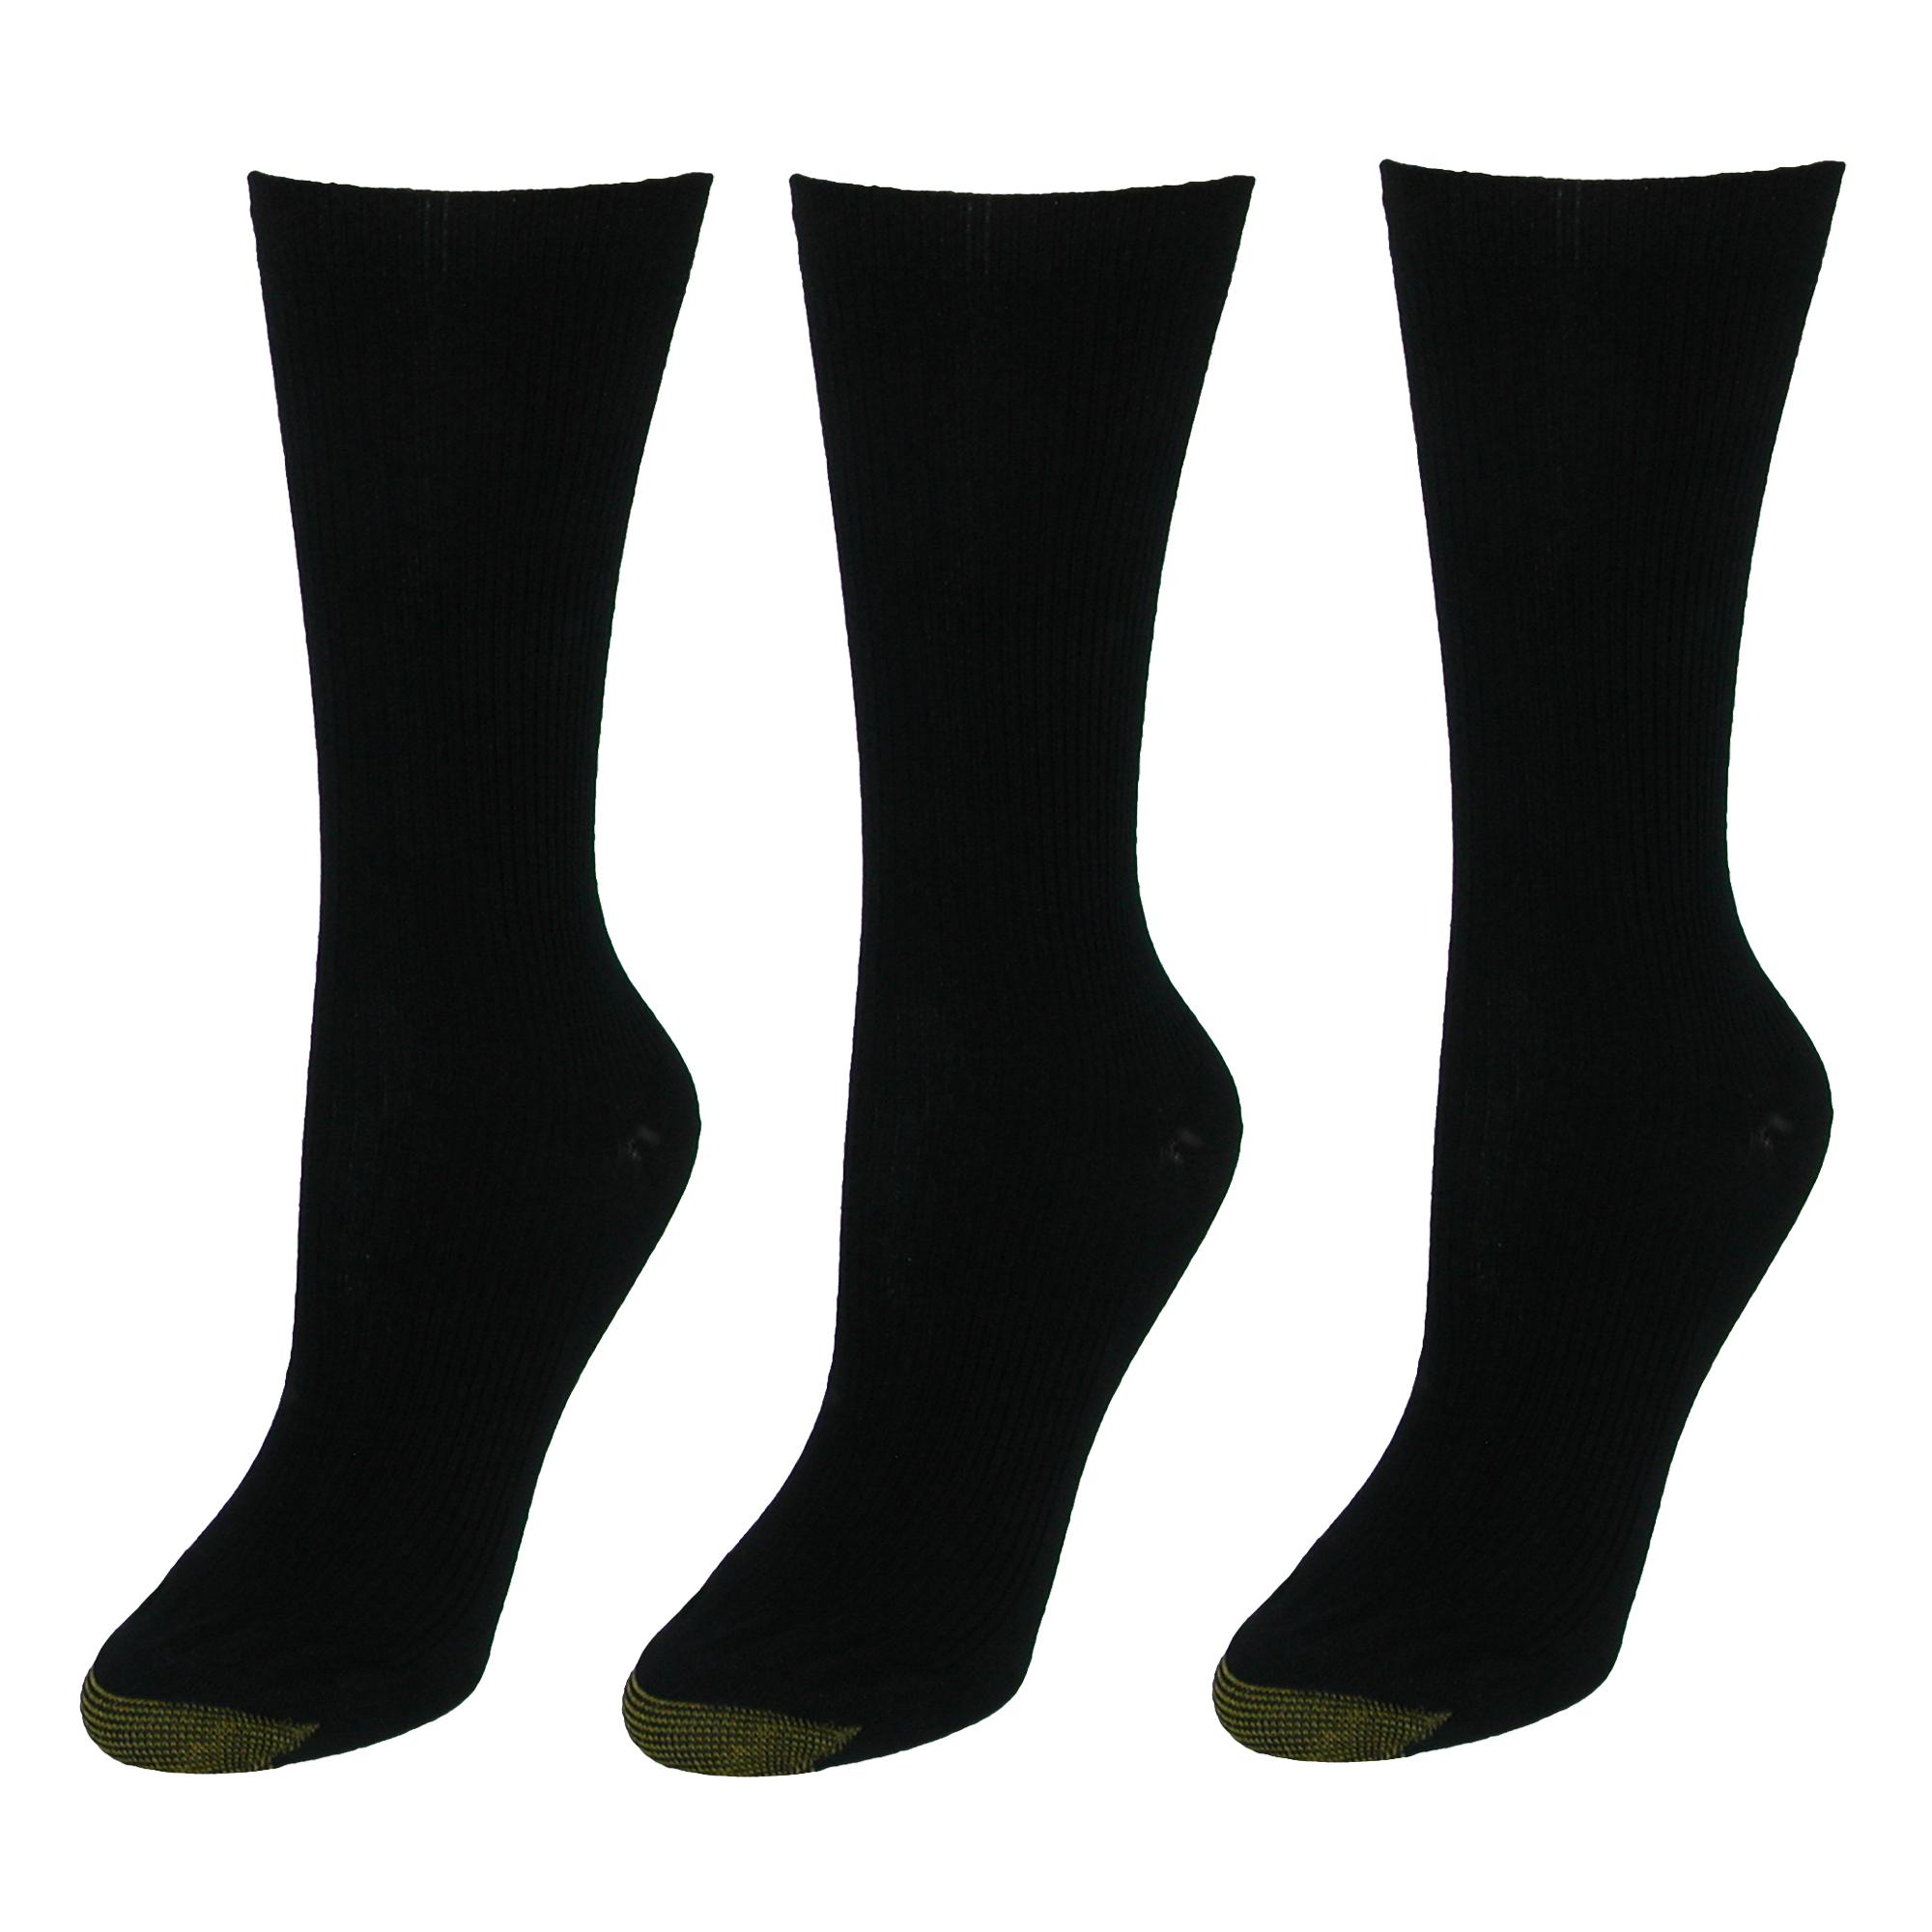 Gold Toe Womens Extended Size Non Binding Crew Socks (3 Pair Pack)